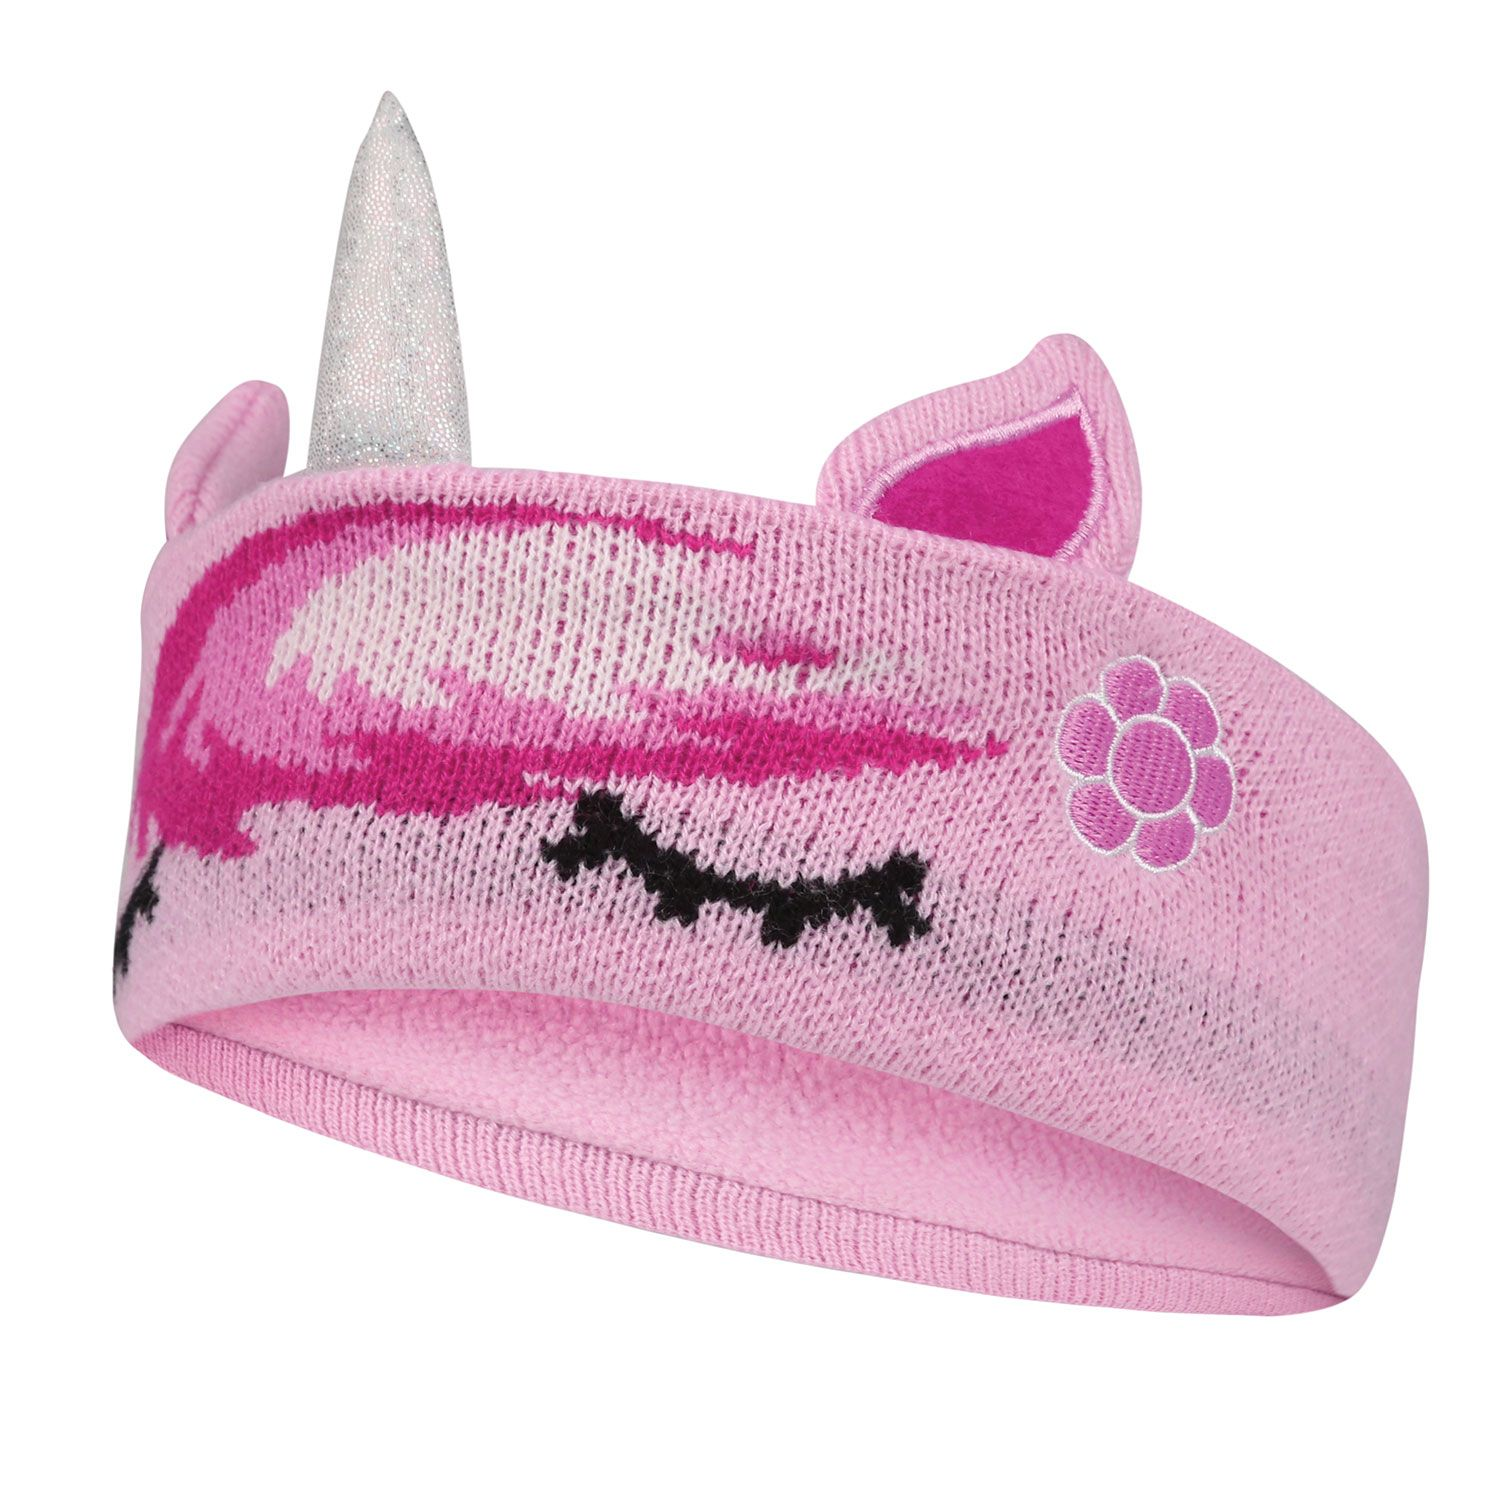 Equetech Sleepy Childs Unicorn Knit Pink Headband